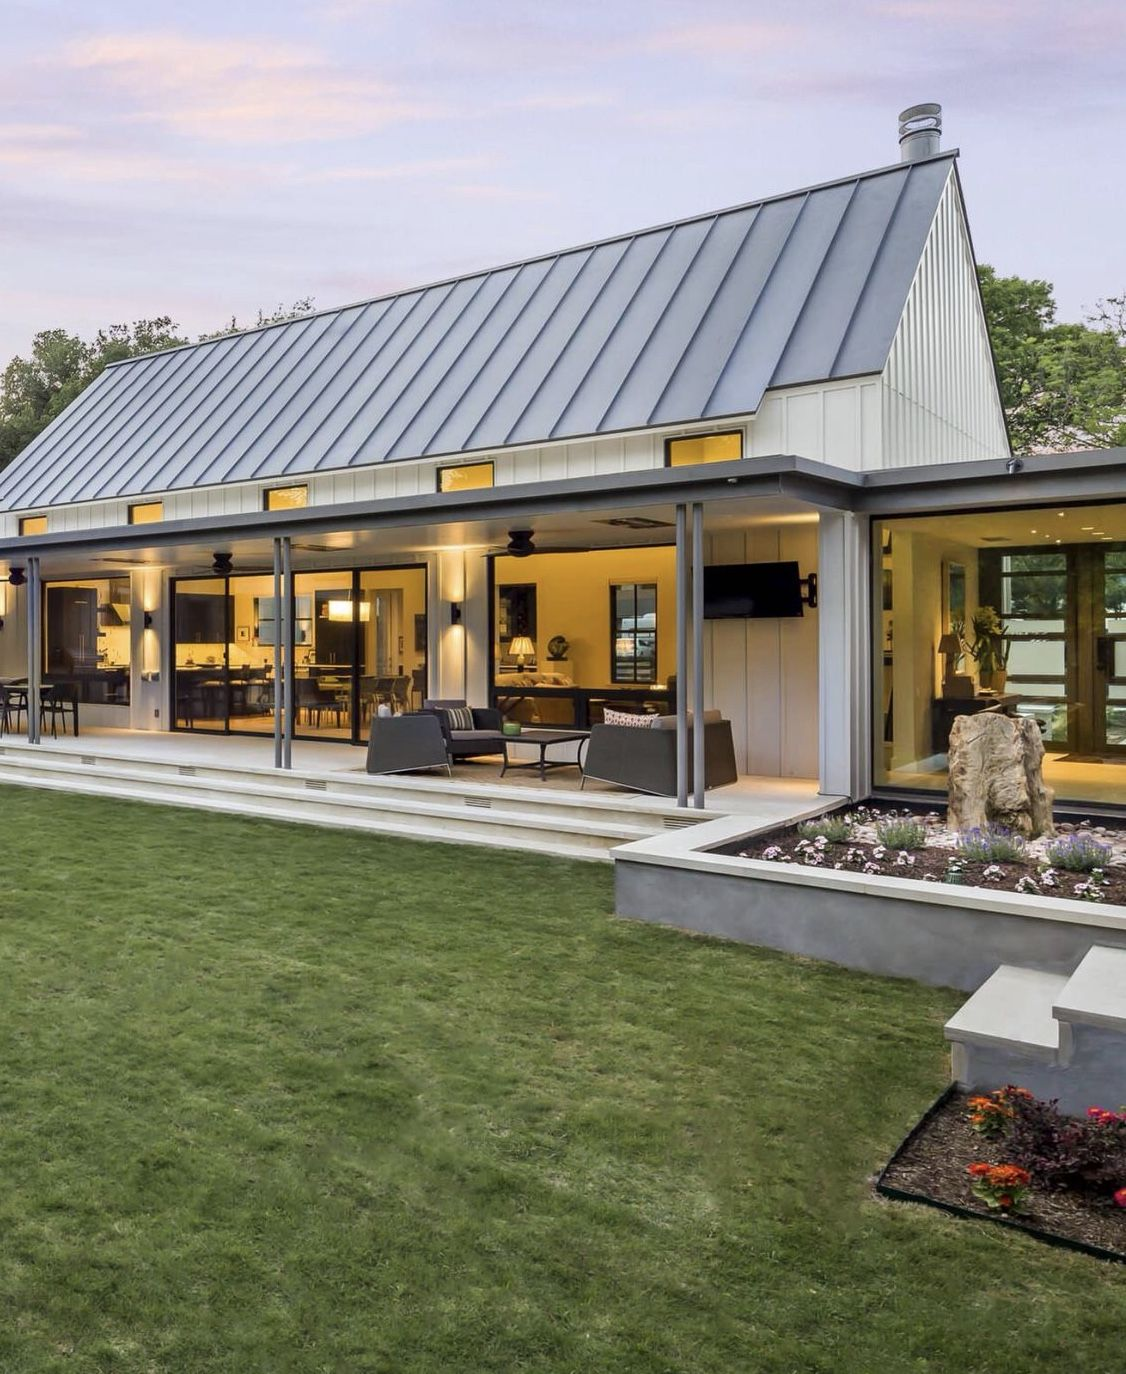 Pin By Lena On Home Exterior Barn Style House Metal Building Homes House Designs Exterior